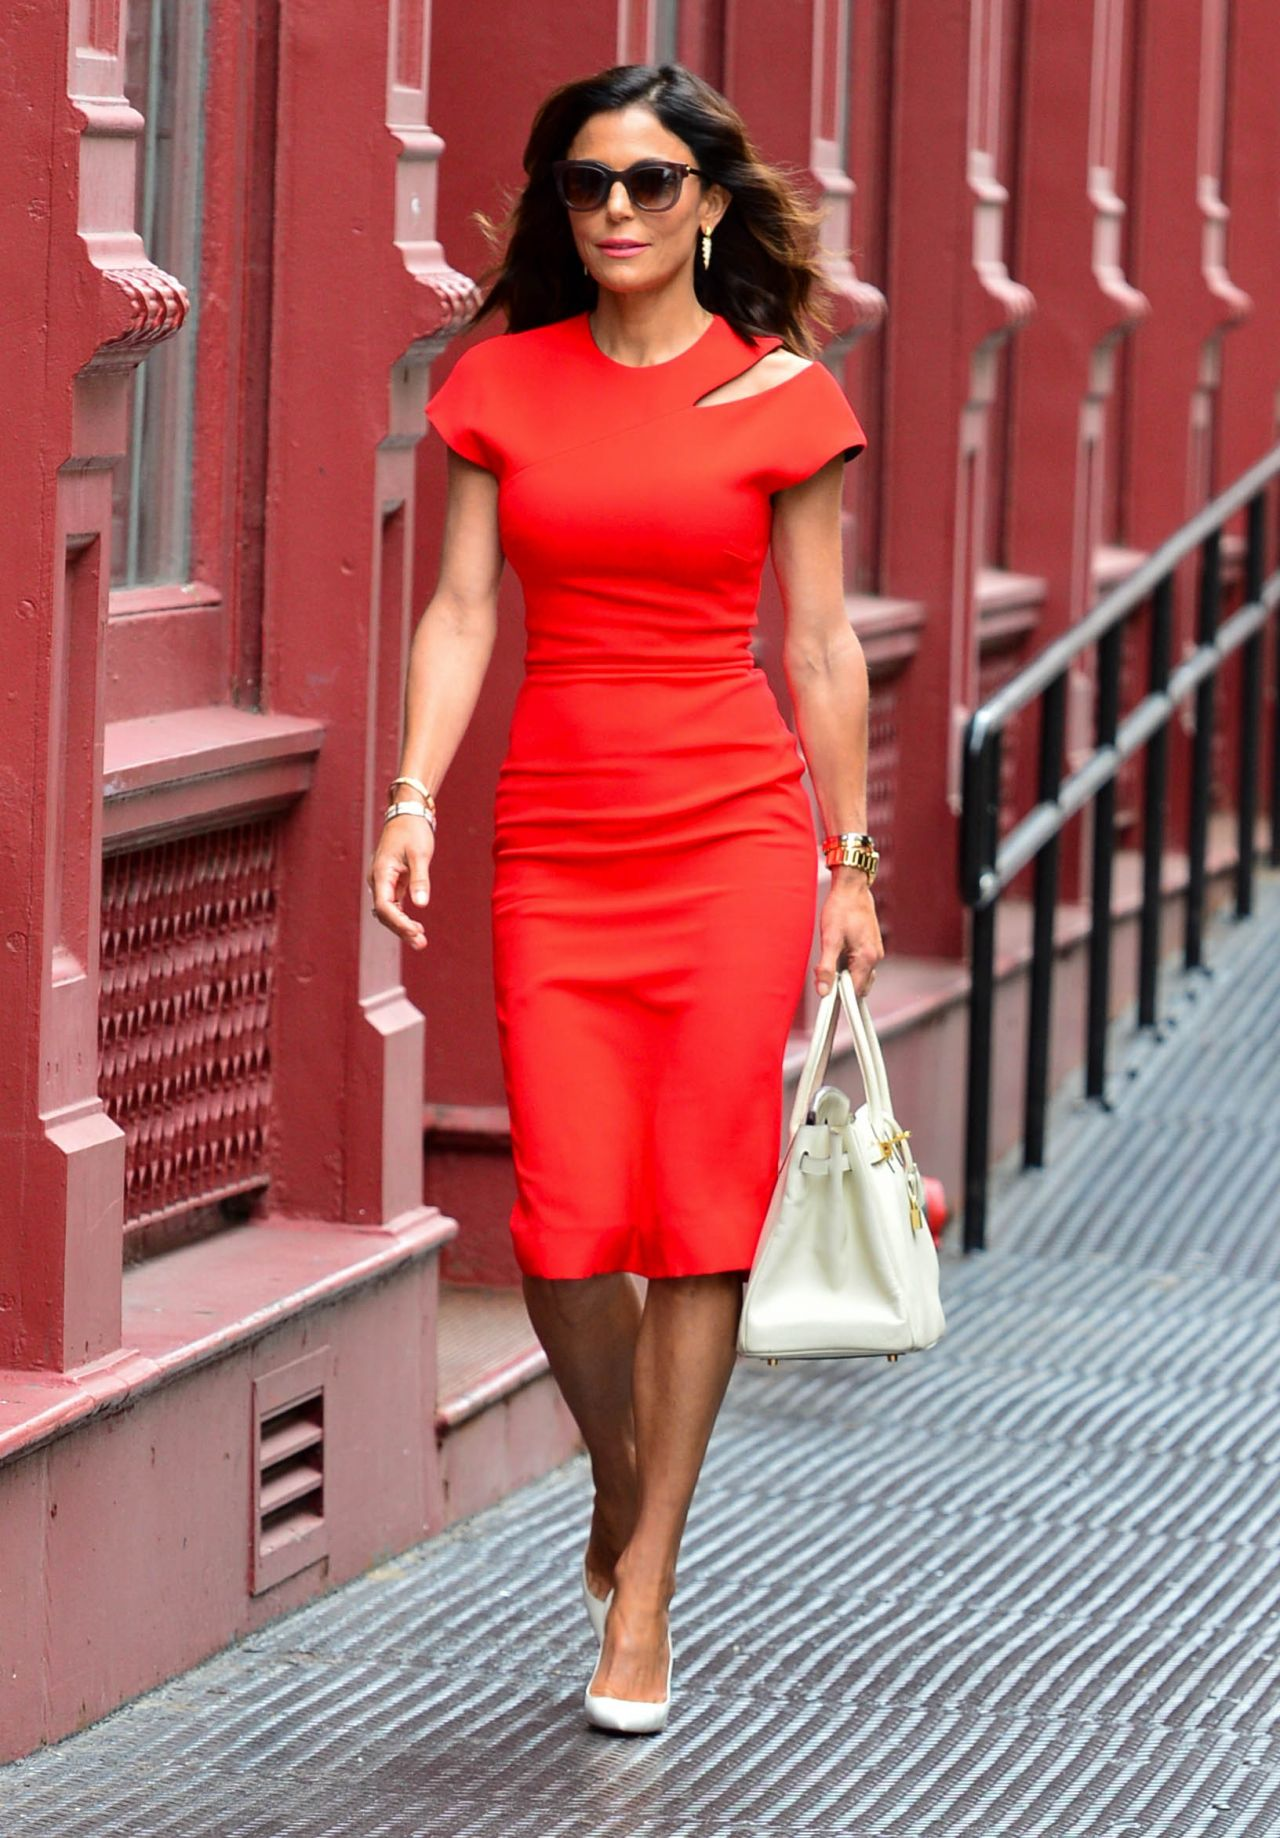 Bethenny Frankel In Red Dress Spotted Soho Nyc 07 11 2017